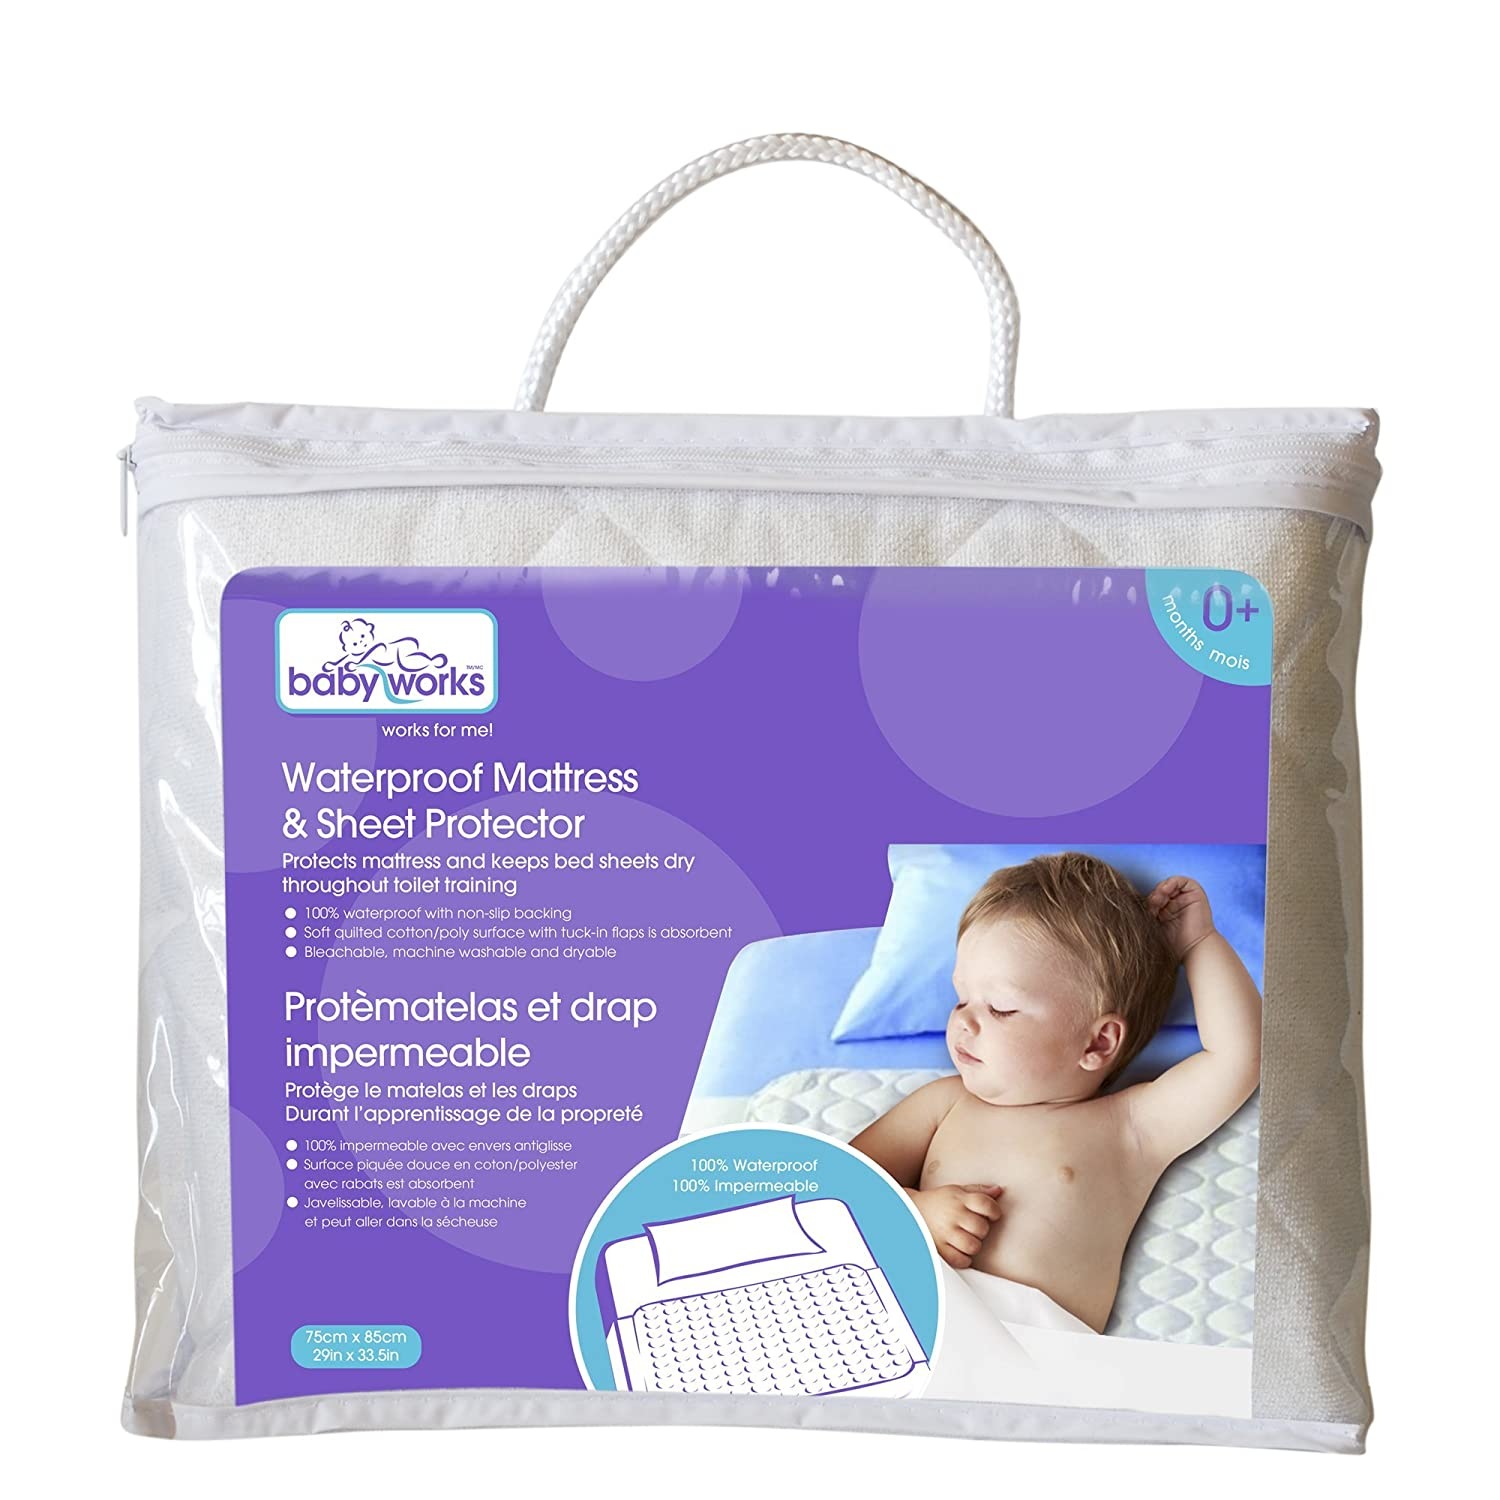 Baby Works Waterproof Mattress & Sheet protector 29009